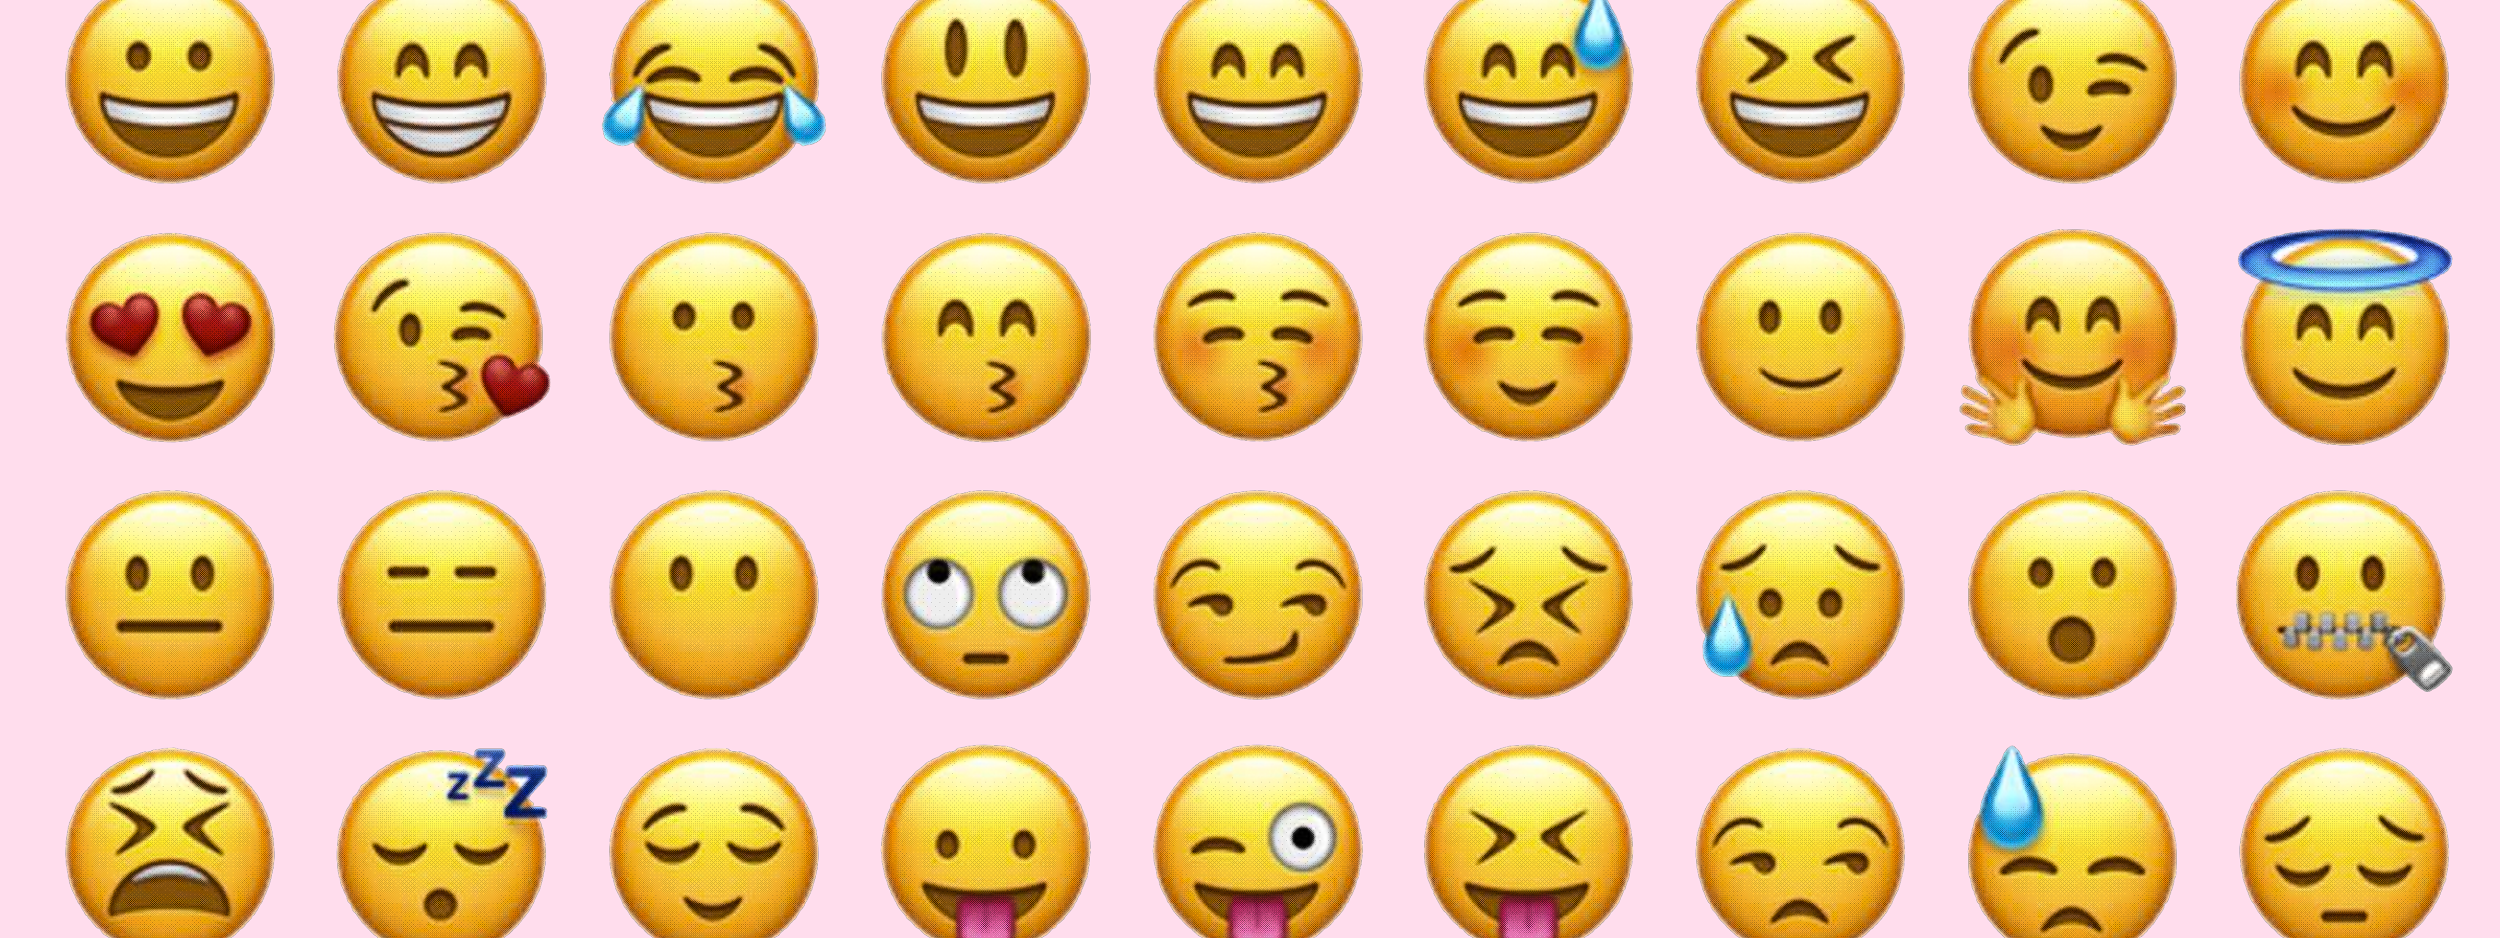 Emojis mimic human faces making up the emoji language